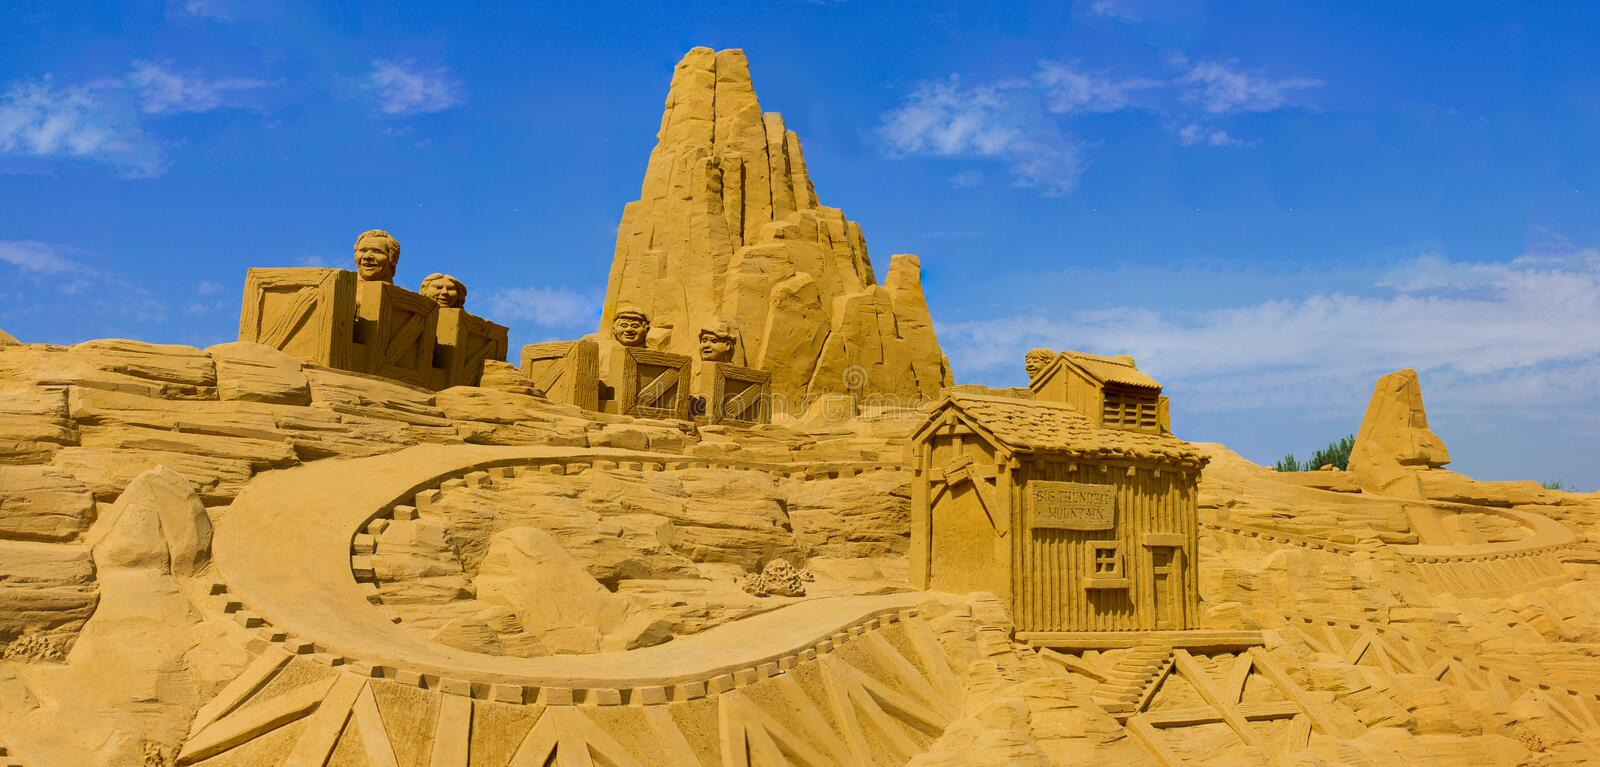 Sand castle stock illustration